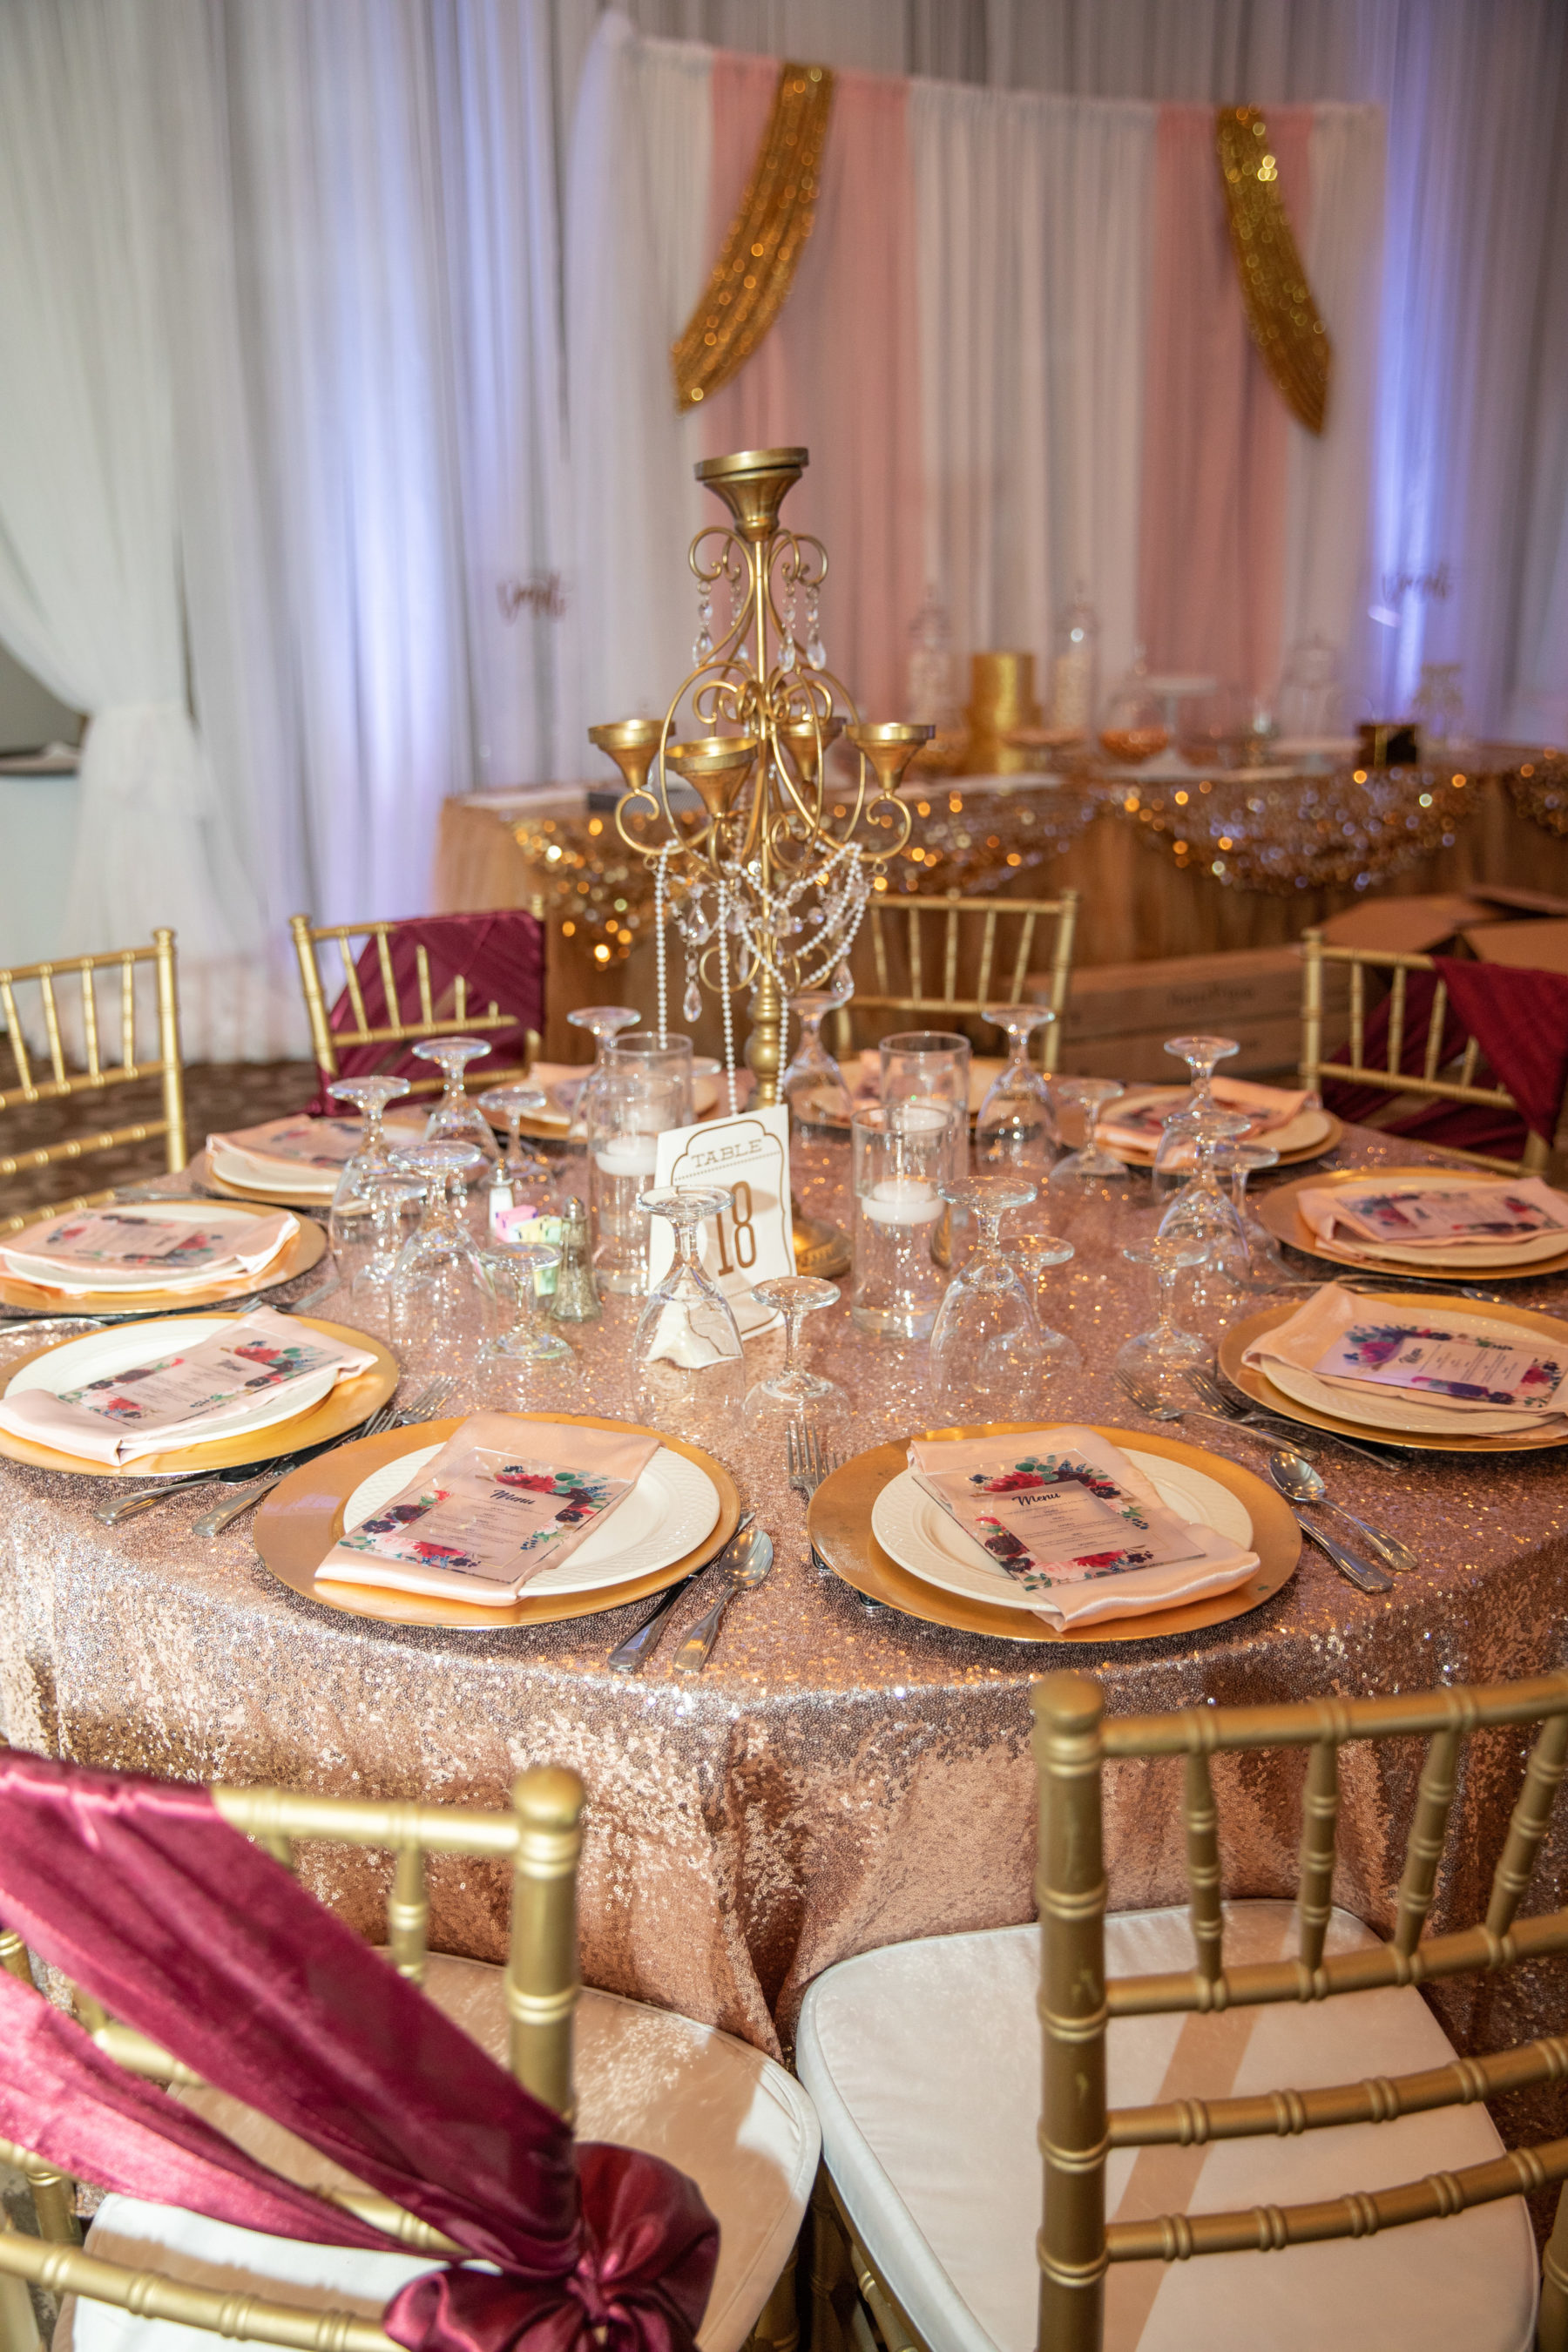 Rose gold wedding table linens: Luxurious Stone Rivers Country Club Wedding featured on Nashville Bride Guide